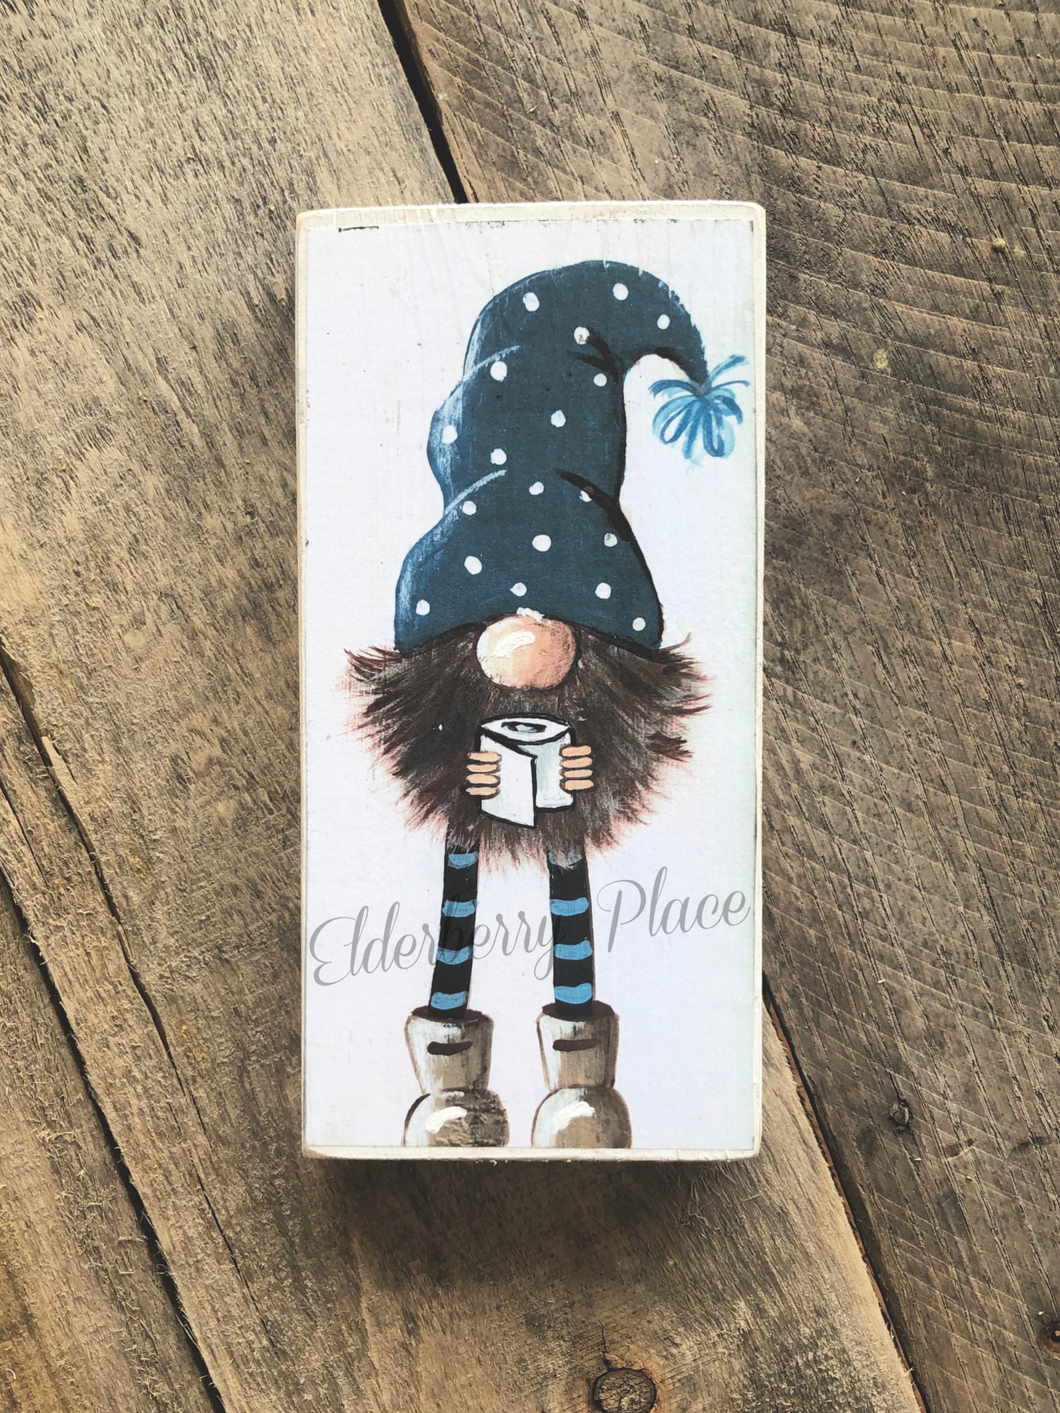 PRINT BLOCK of Original Gnome - Blue Dotted Hat & Toilet Paper 7